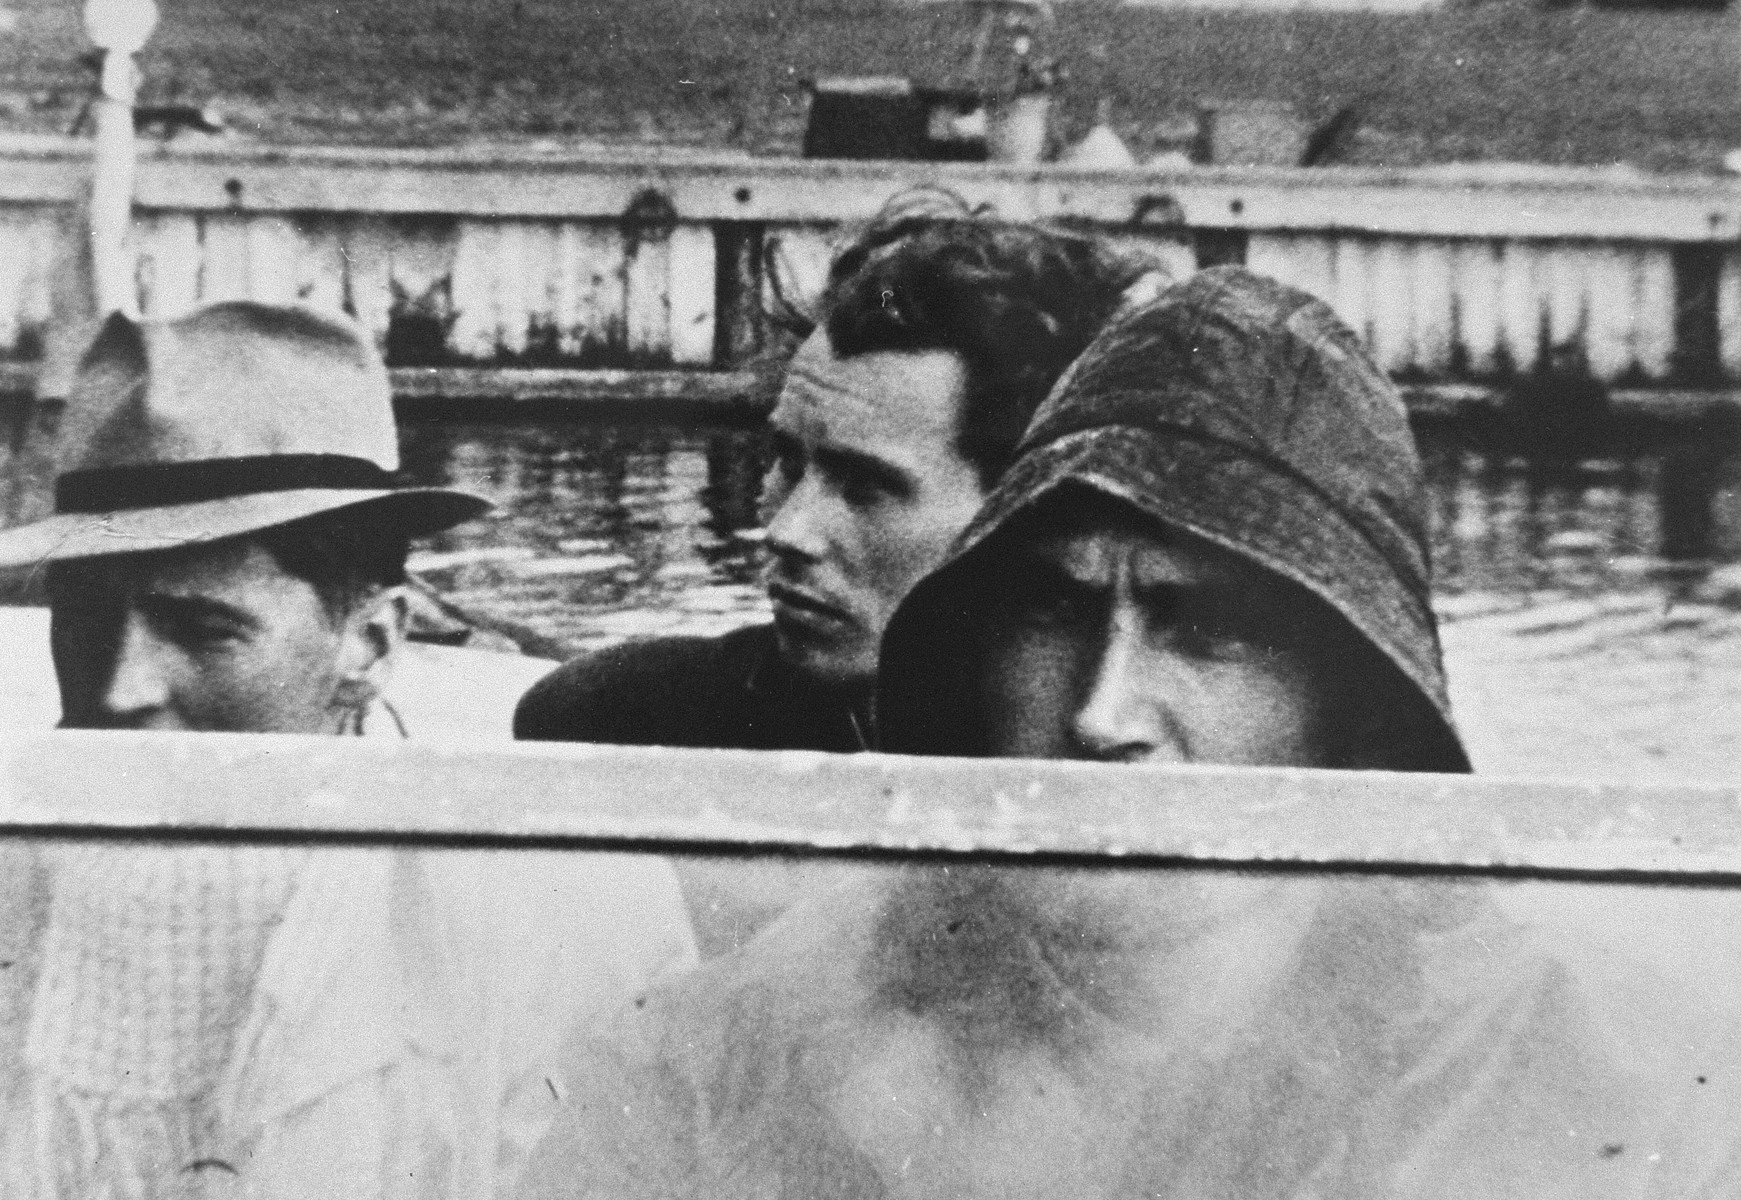 Close-up of Danish rescuers on board a boat.